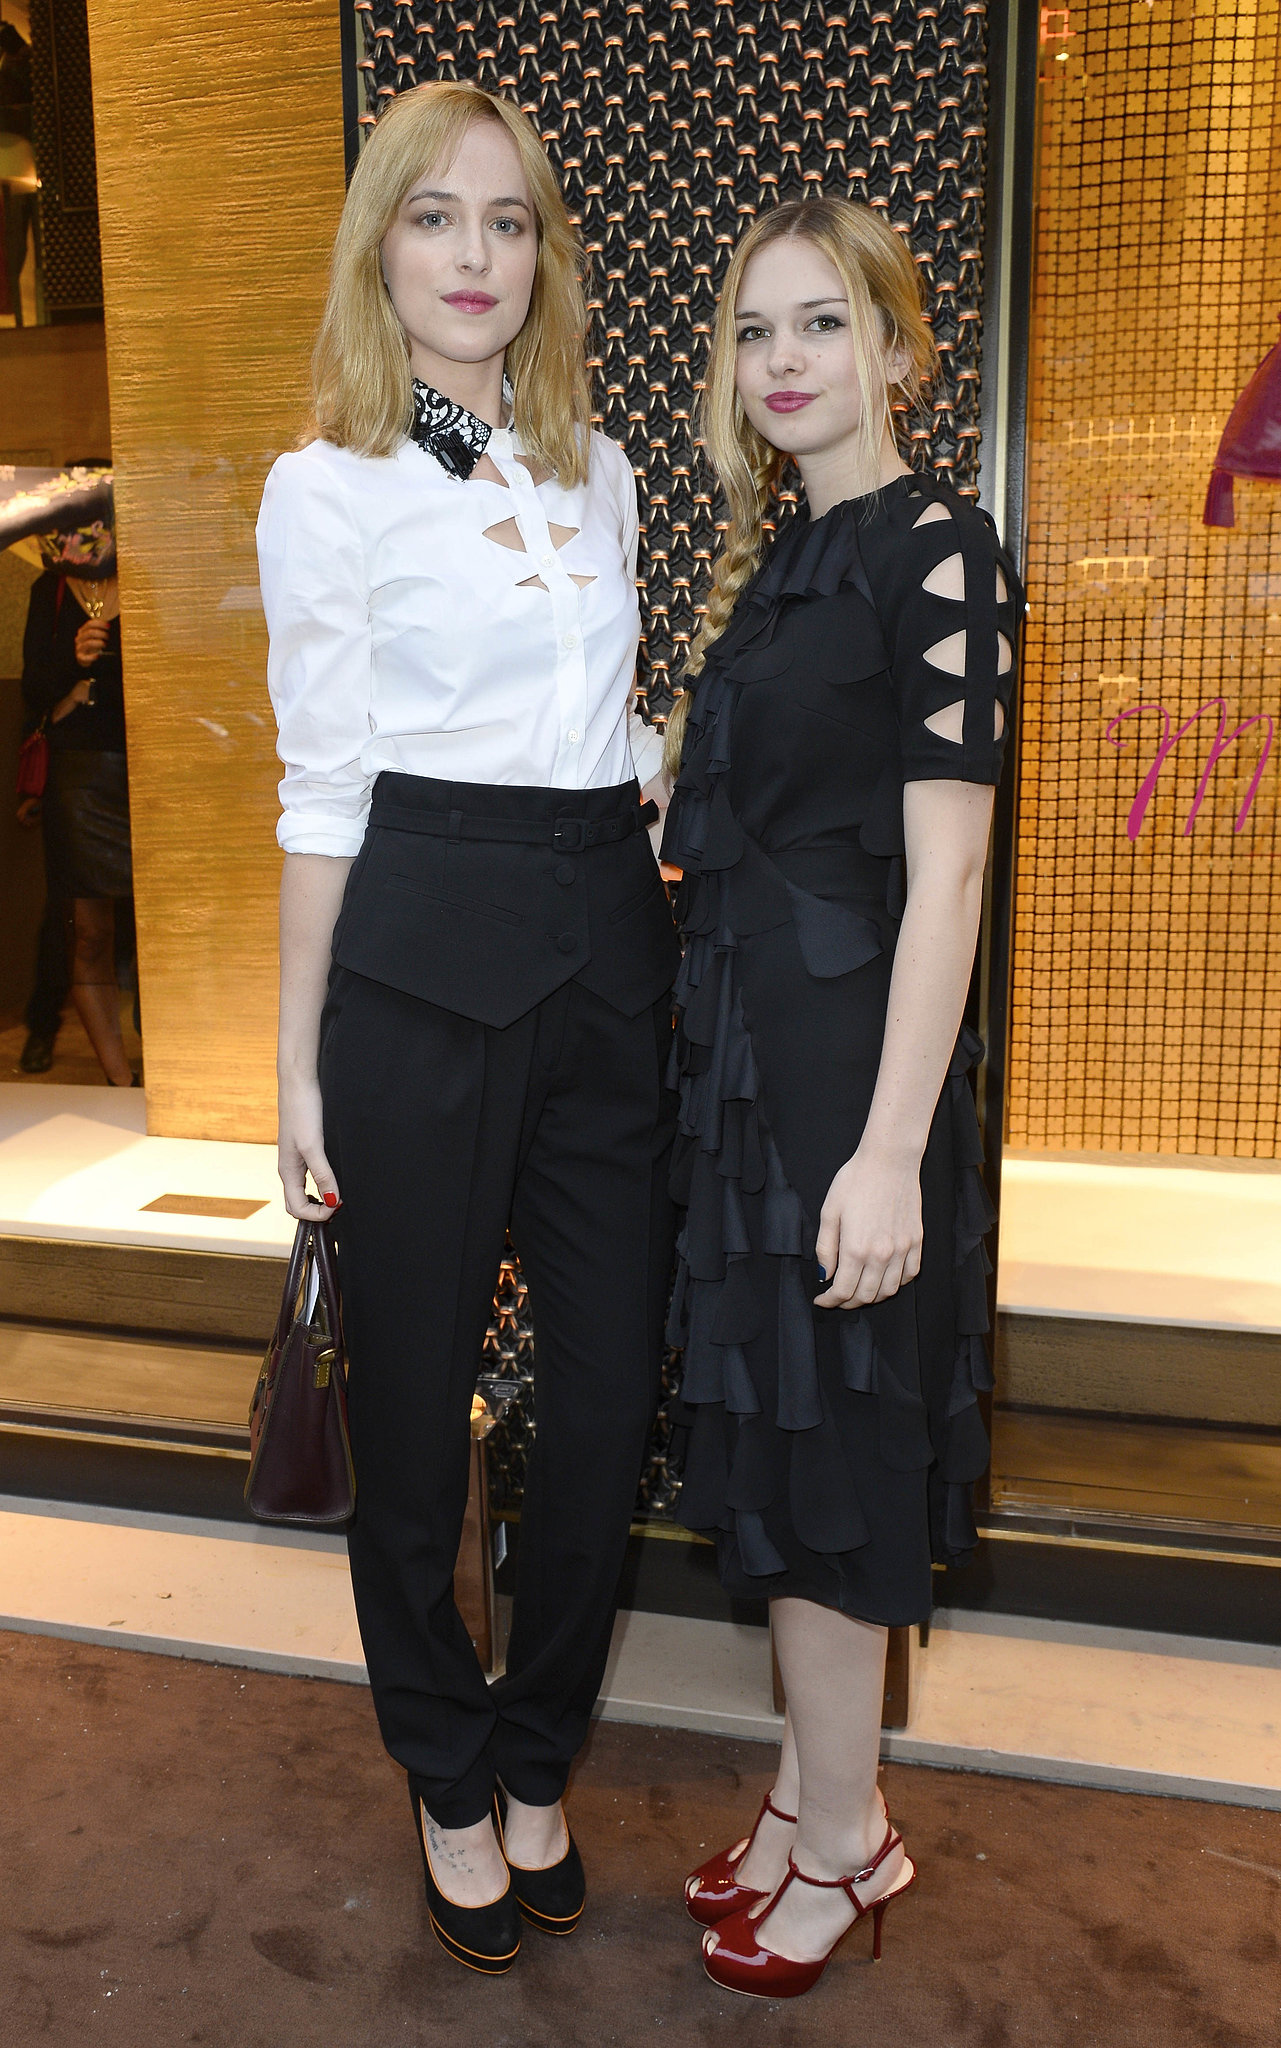 Dakota Johnson and Stella Banderas doubled up on the blond power at the Paris Loewe boutique opening.